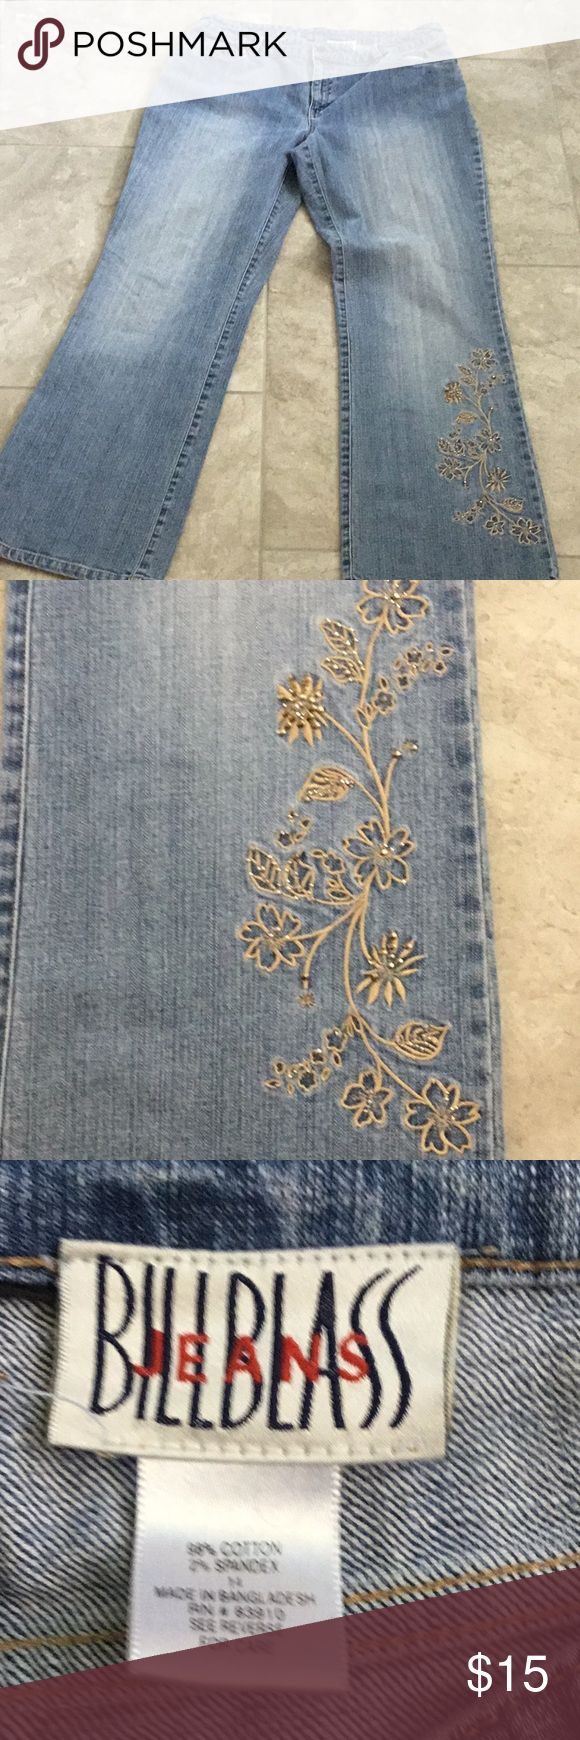 "Bill Blass Embroidered Light Wash Jeans Size 14 Medium Wash Bill Blass Jeans Beautiful floral embroidery with grommets on left leg Size 14 98% Cotton 2% Spandex Waist measures approximately 17"" (34"" total) Inseam measures 29.5"" Rise measures 10.5"" Hips measure 21"" (42"" total) Leg opening measures 10""  Thanks for looking! Bill Blass Jeans"